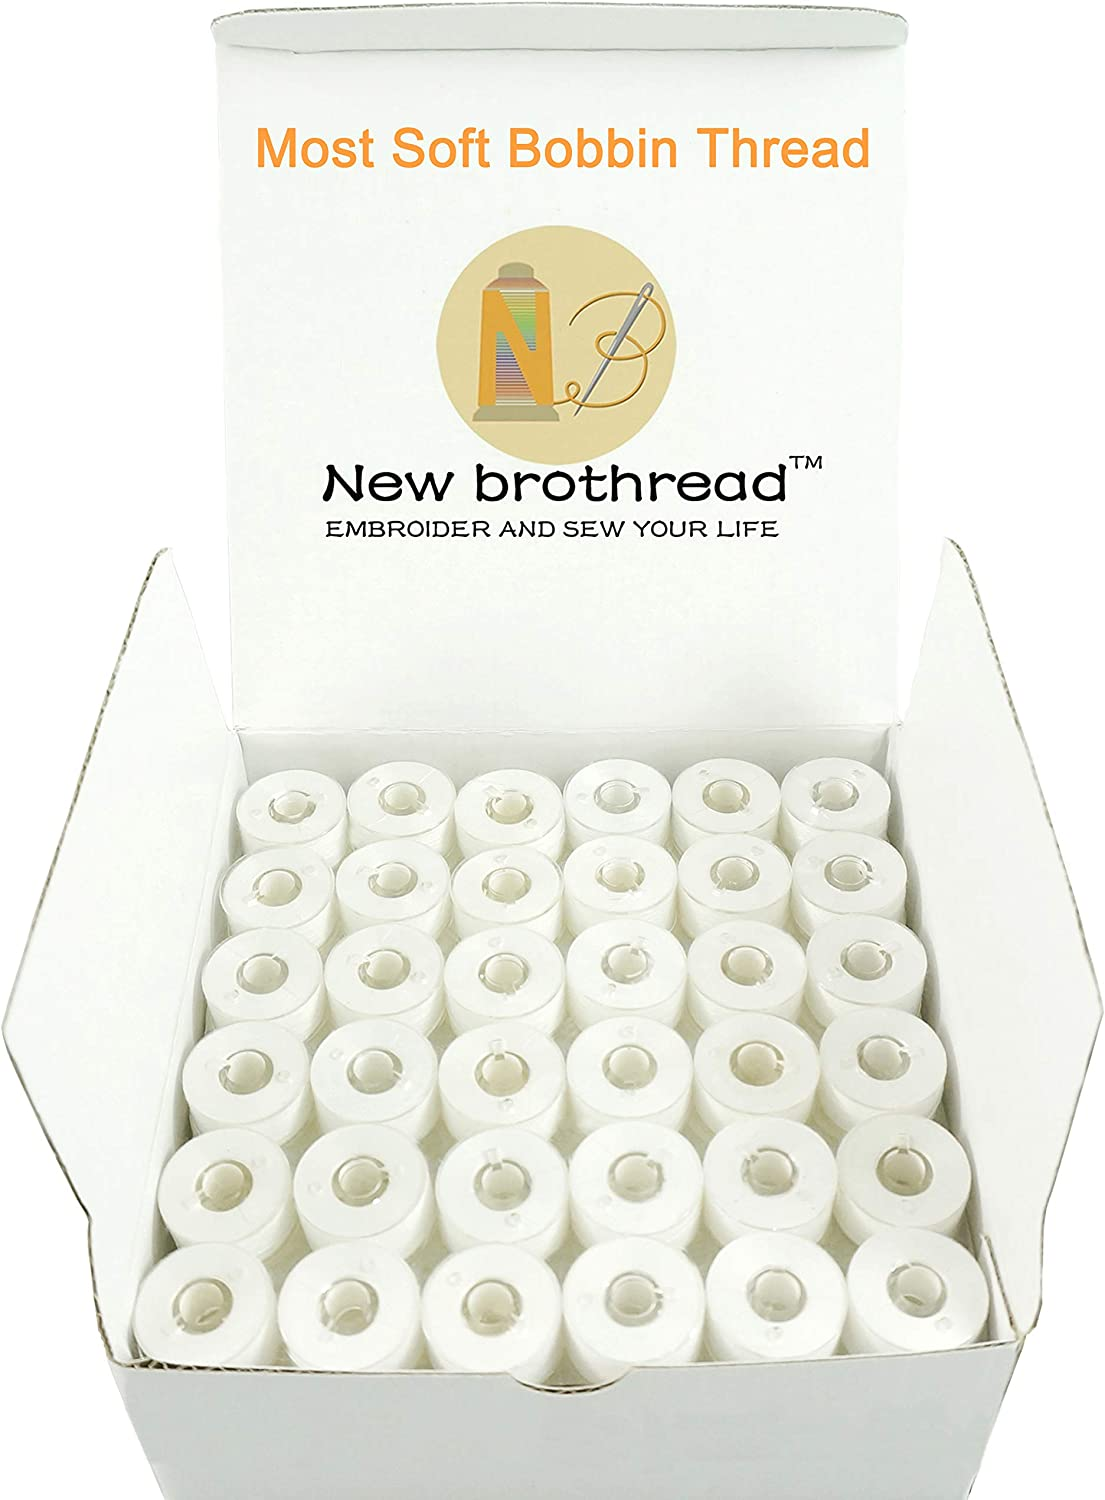 Prewound Bobbin Thread Plastic Size A SA156 for Embroidery and Sewing Machine Polyester Embroidery Thread Sewing Thread New brothread 144pcs White 60S//2 90WT